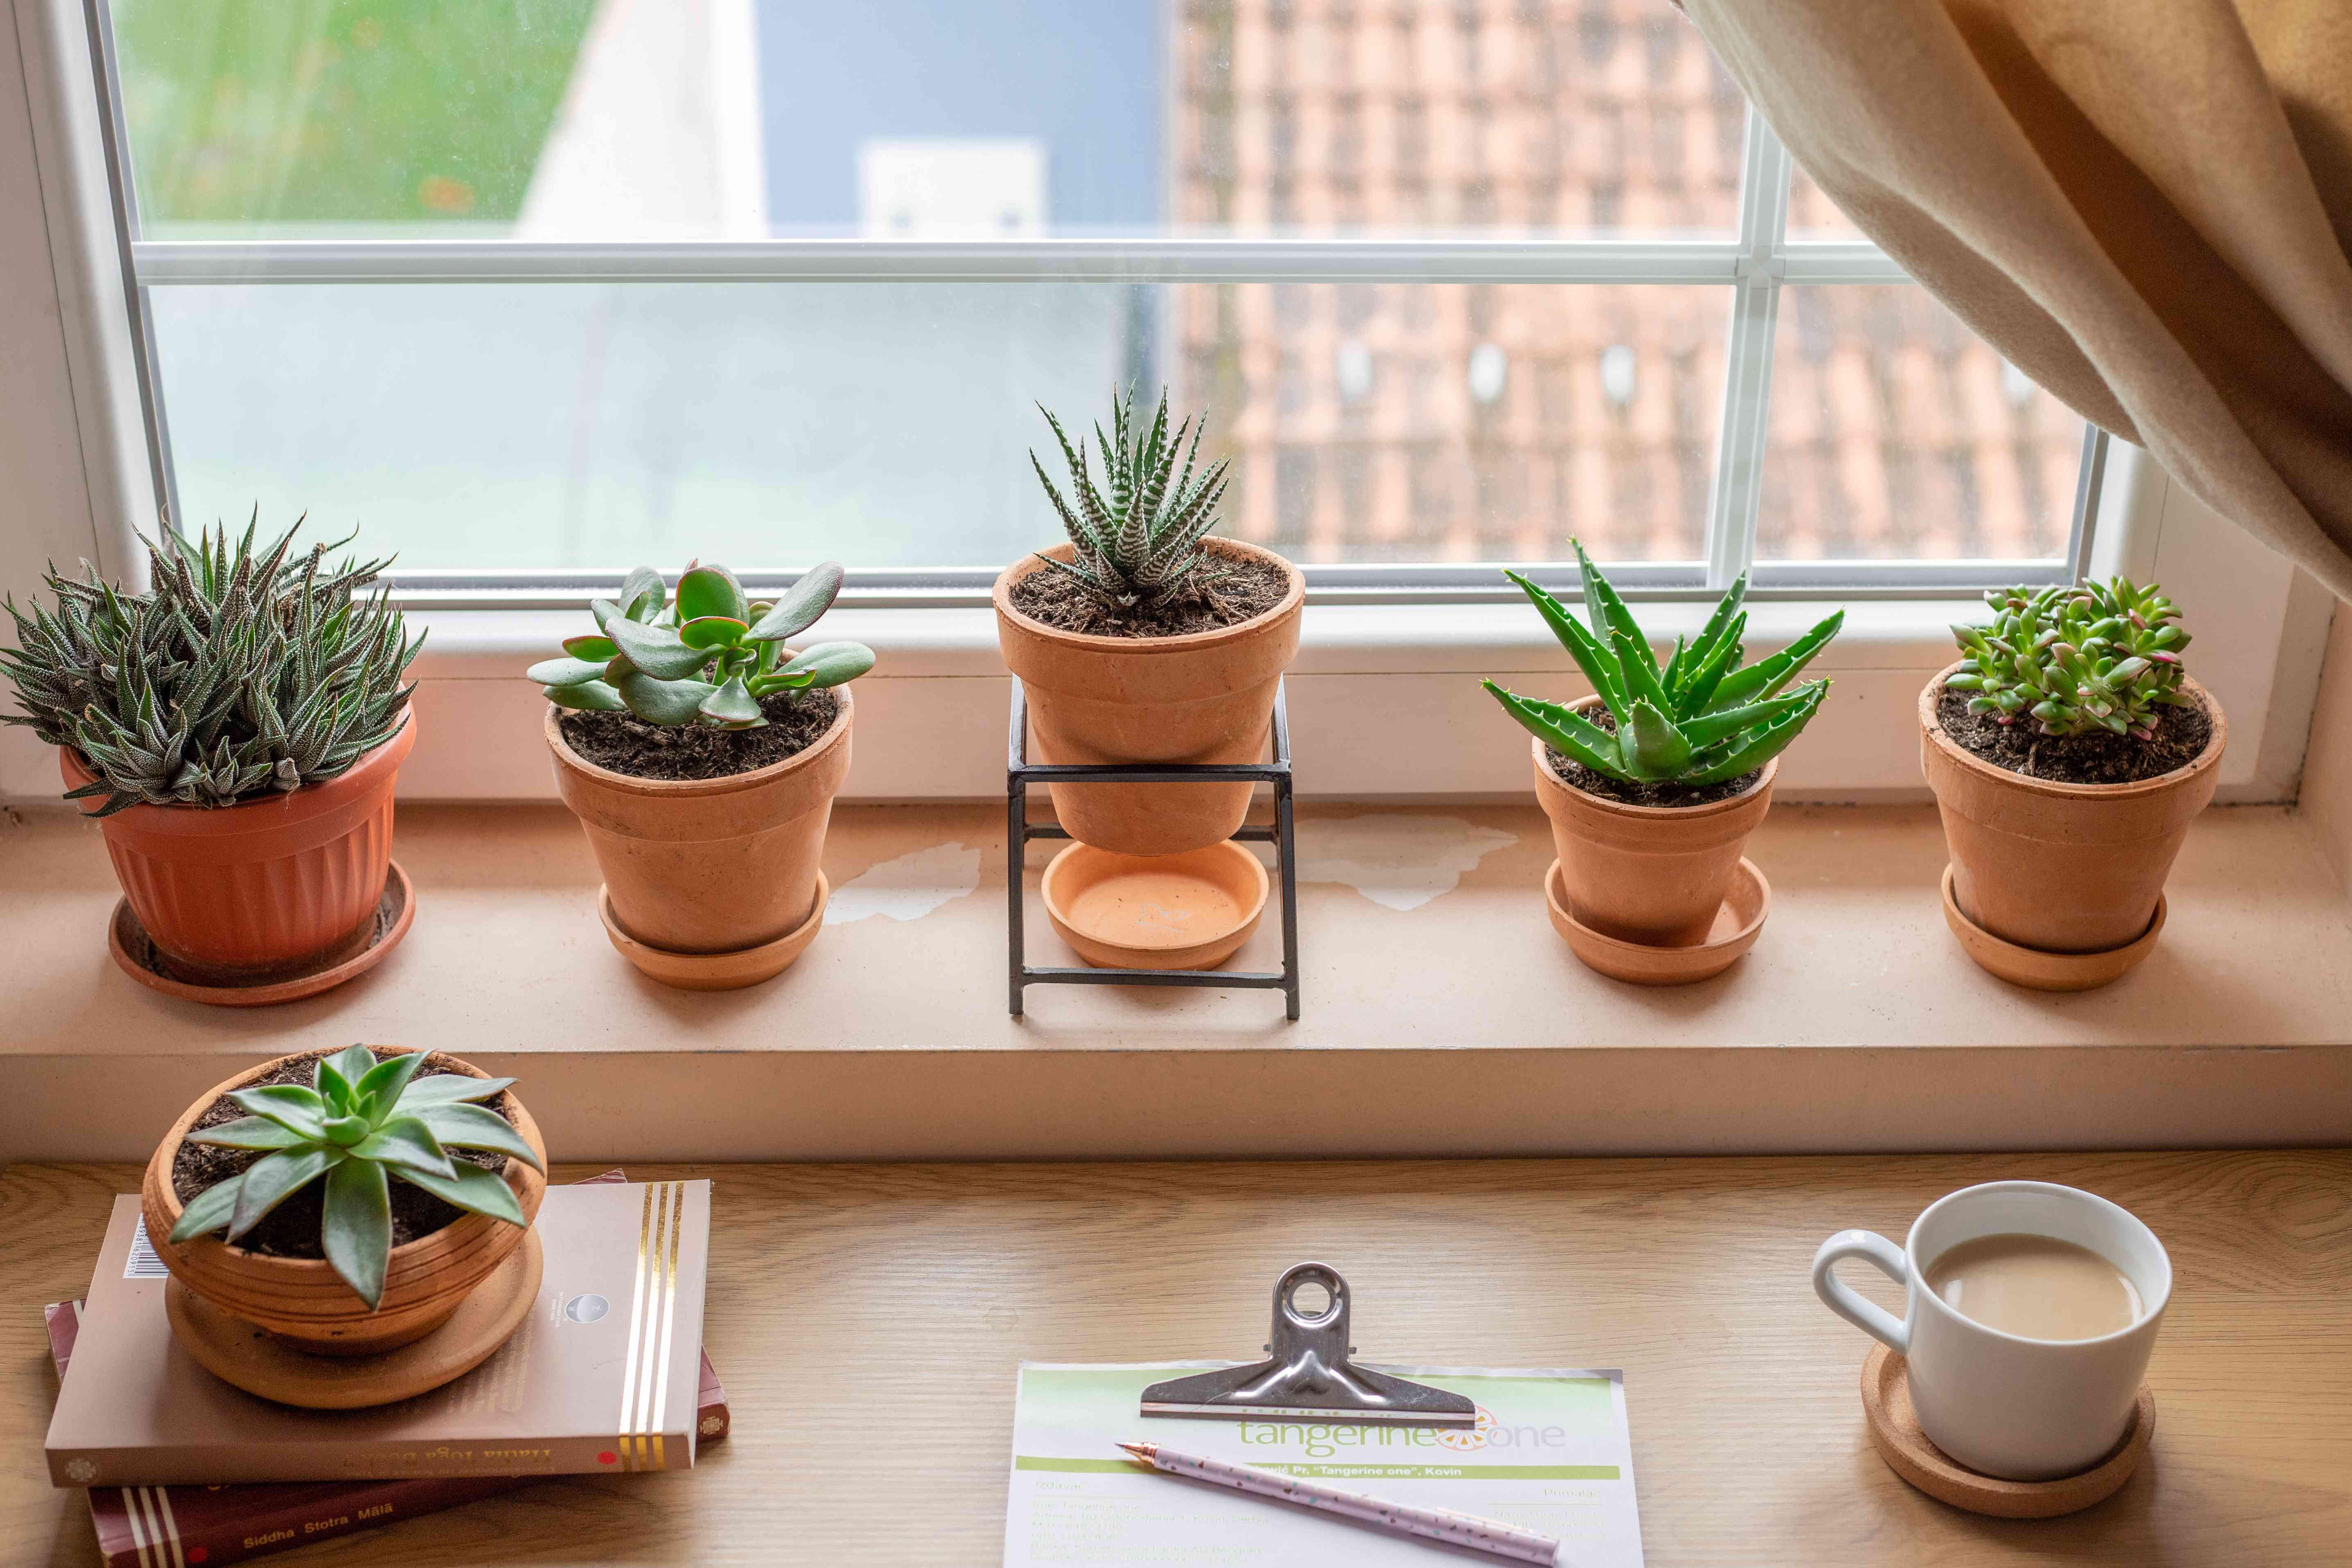 row of succulents next to open window cup of coffee